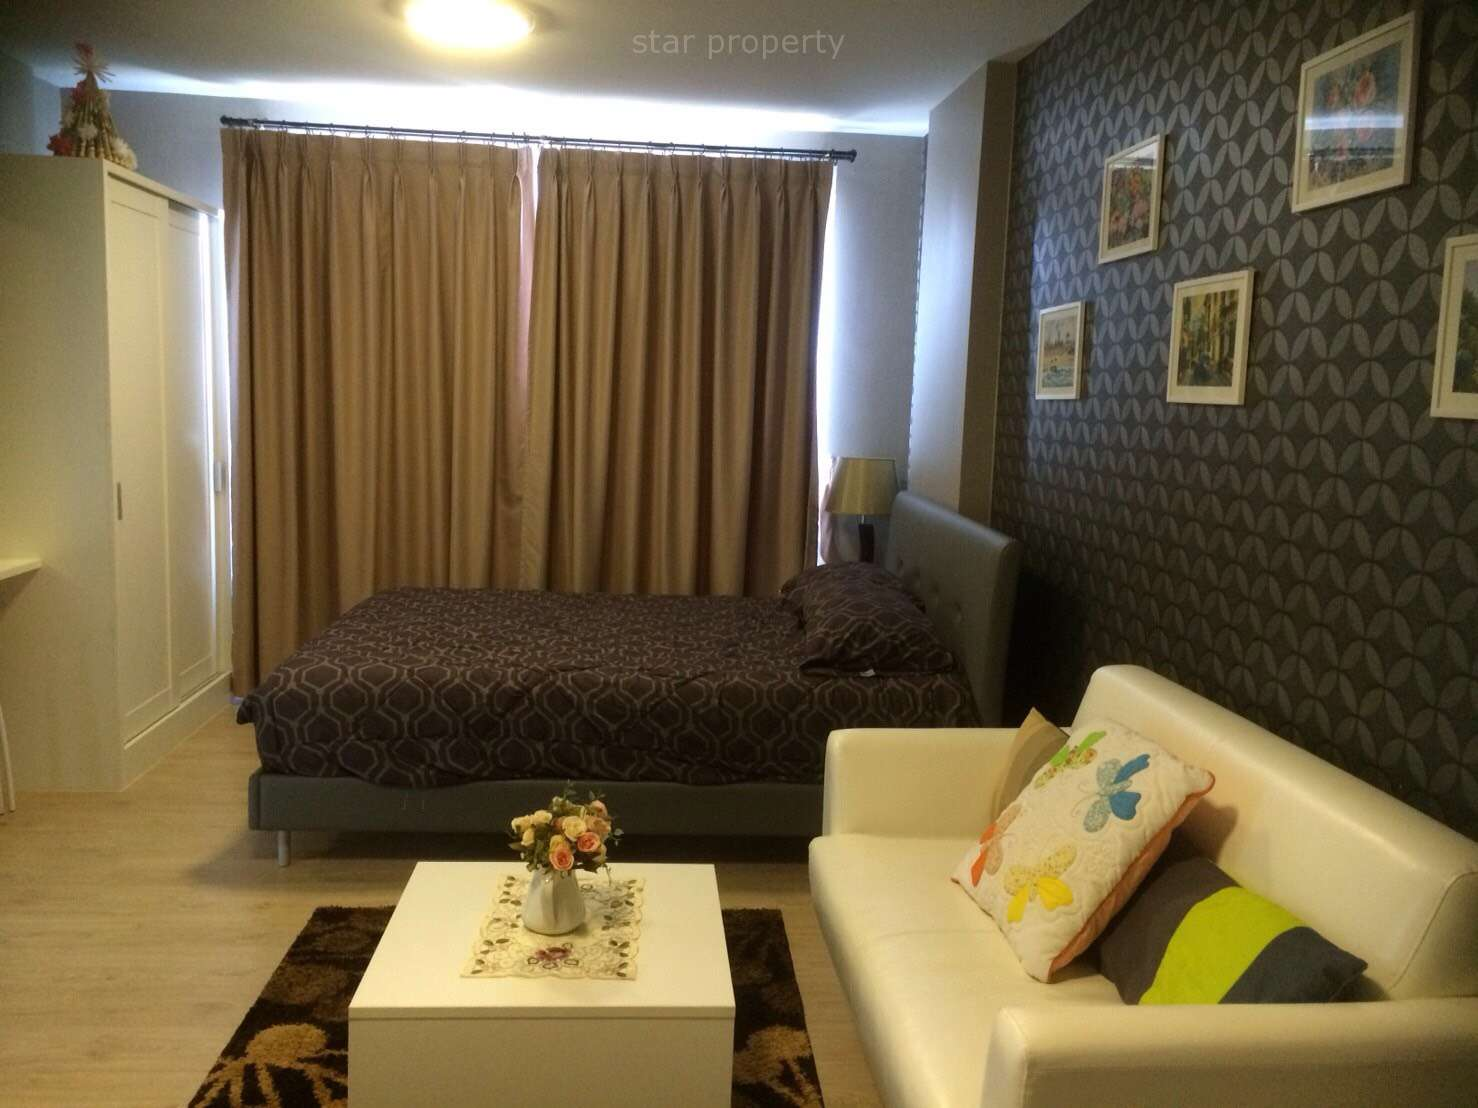 Baan Piengploen condo for Sale at Hua Dorn, Nong Kae, Hua Hin